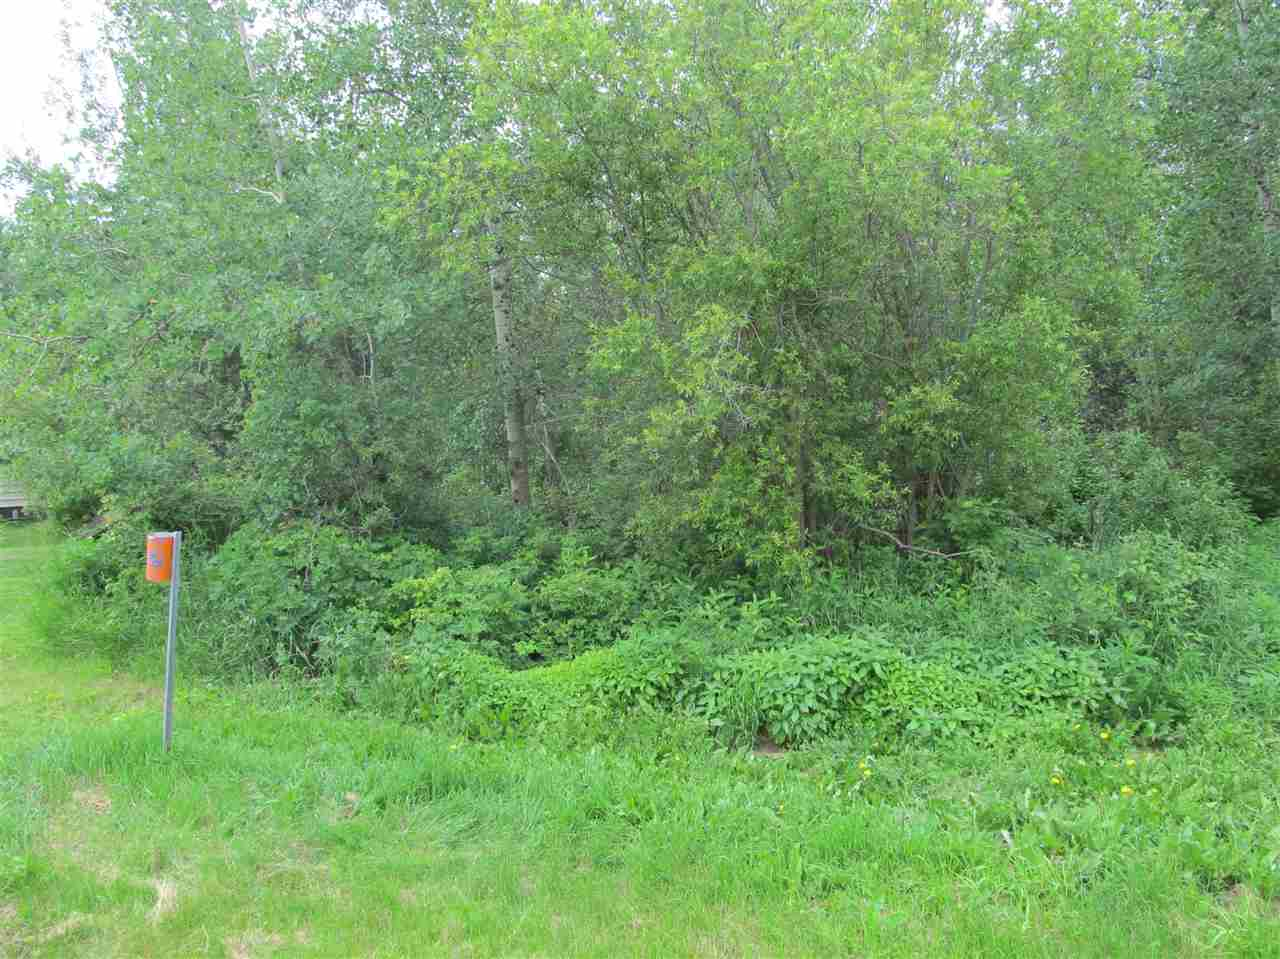 Photo 7: 451 Lakeview Drive: Rural Lac Ste. Anne County Rural Land/Vacant Lot for sale : MLS(r) # E4046294